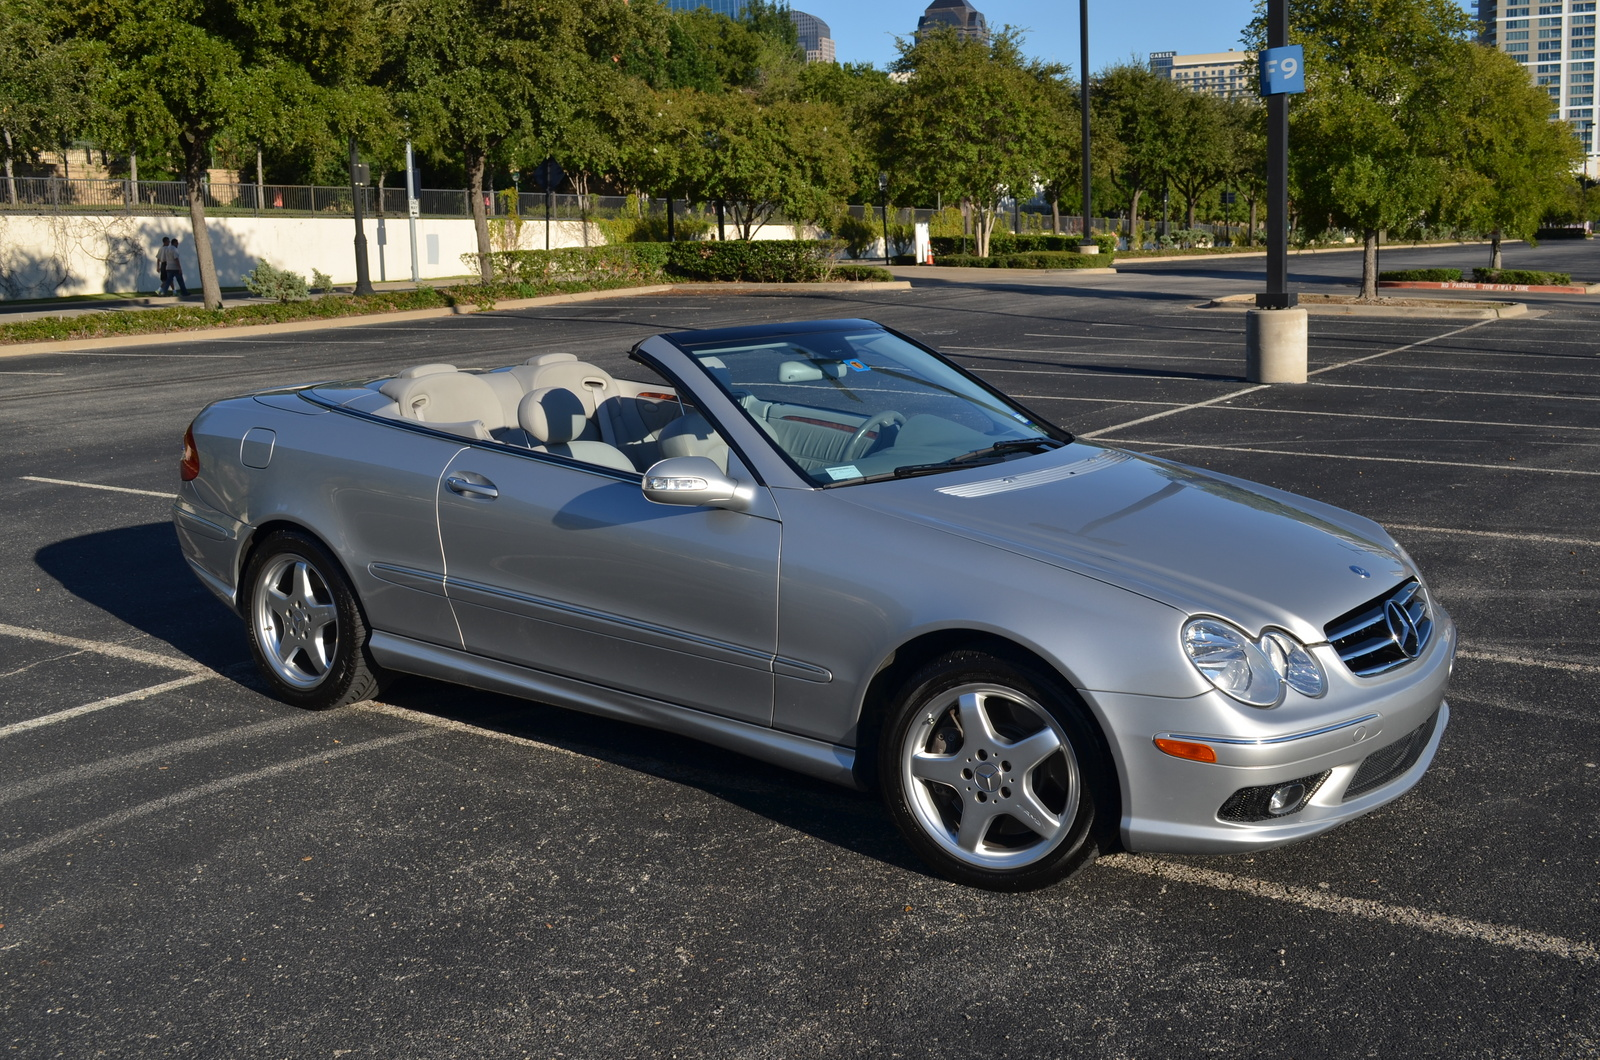 2004 mercedes benz clk class pictures cargurus for Mercedes benz coupe convertible